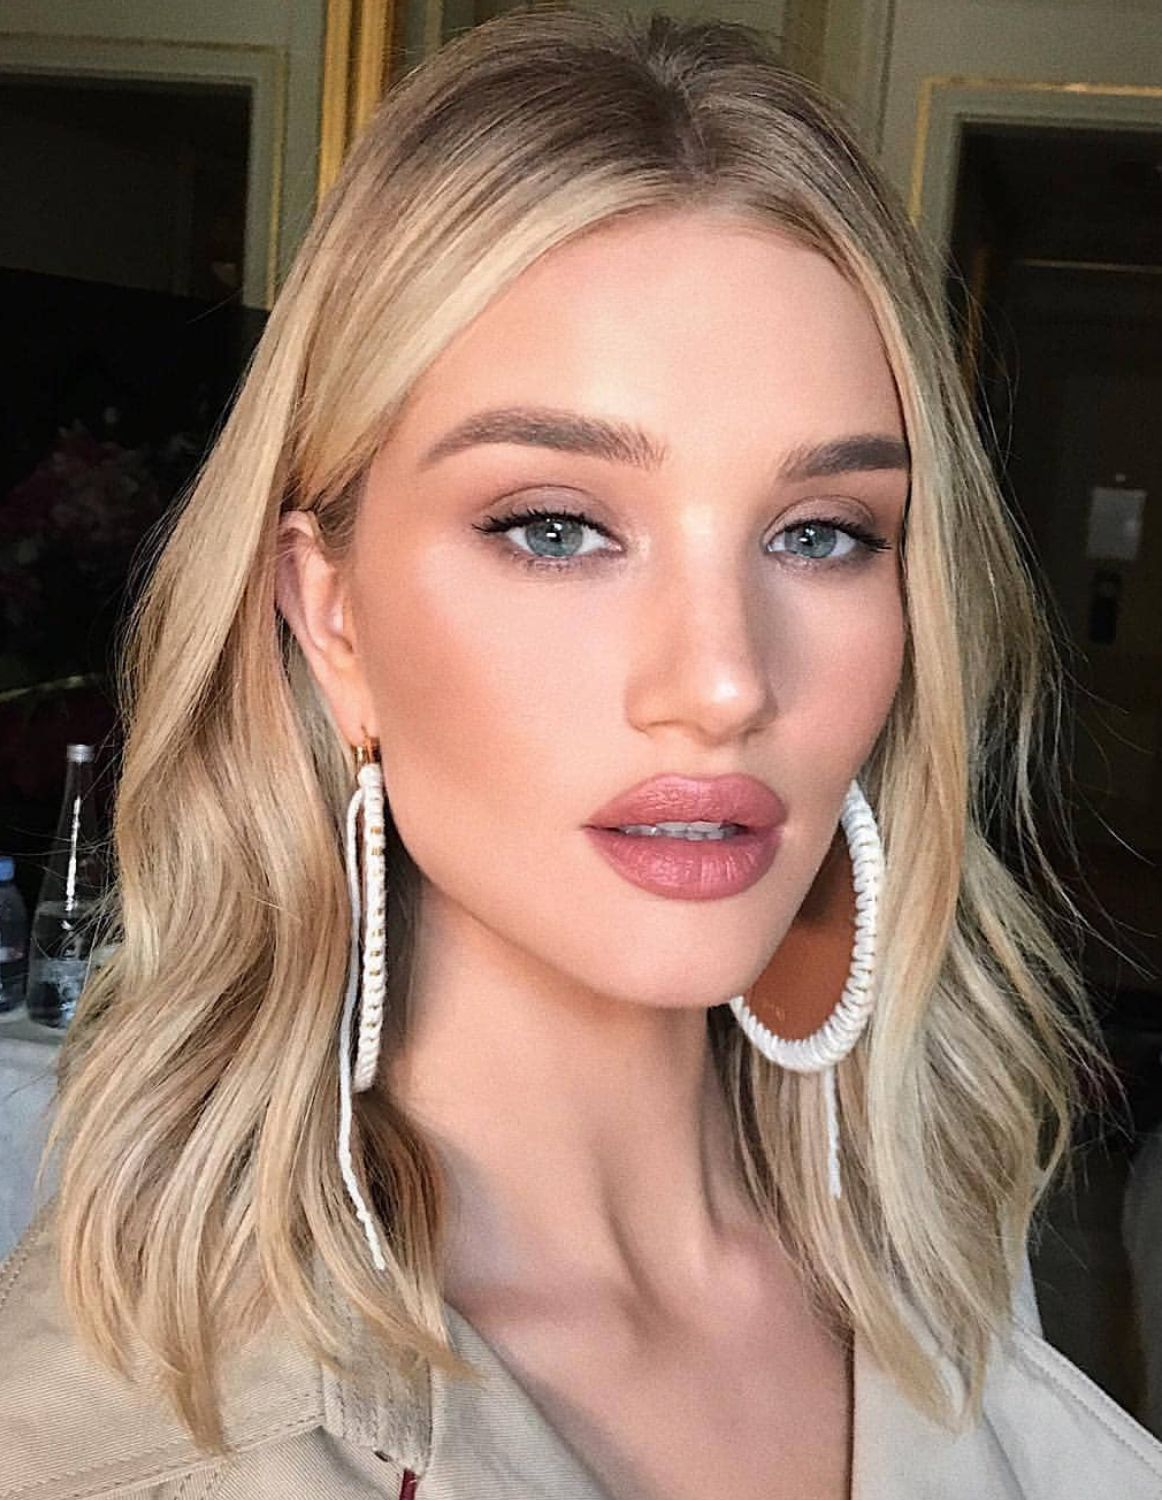 Rosie Huntington Whiteley makeup and hair style look